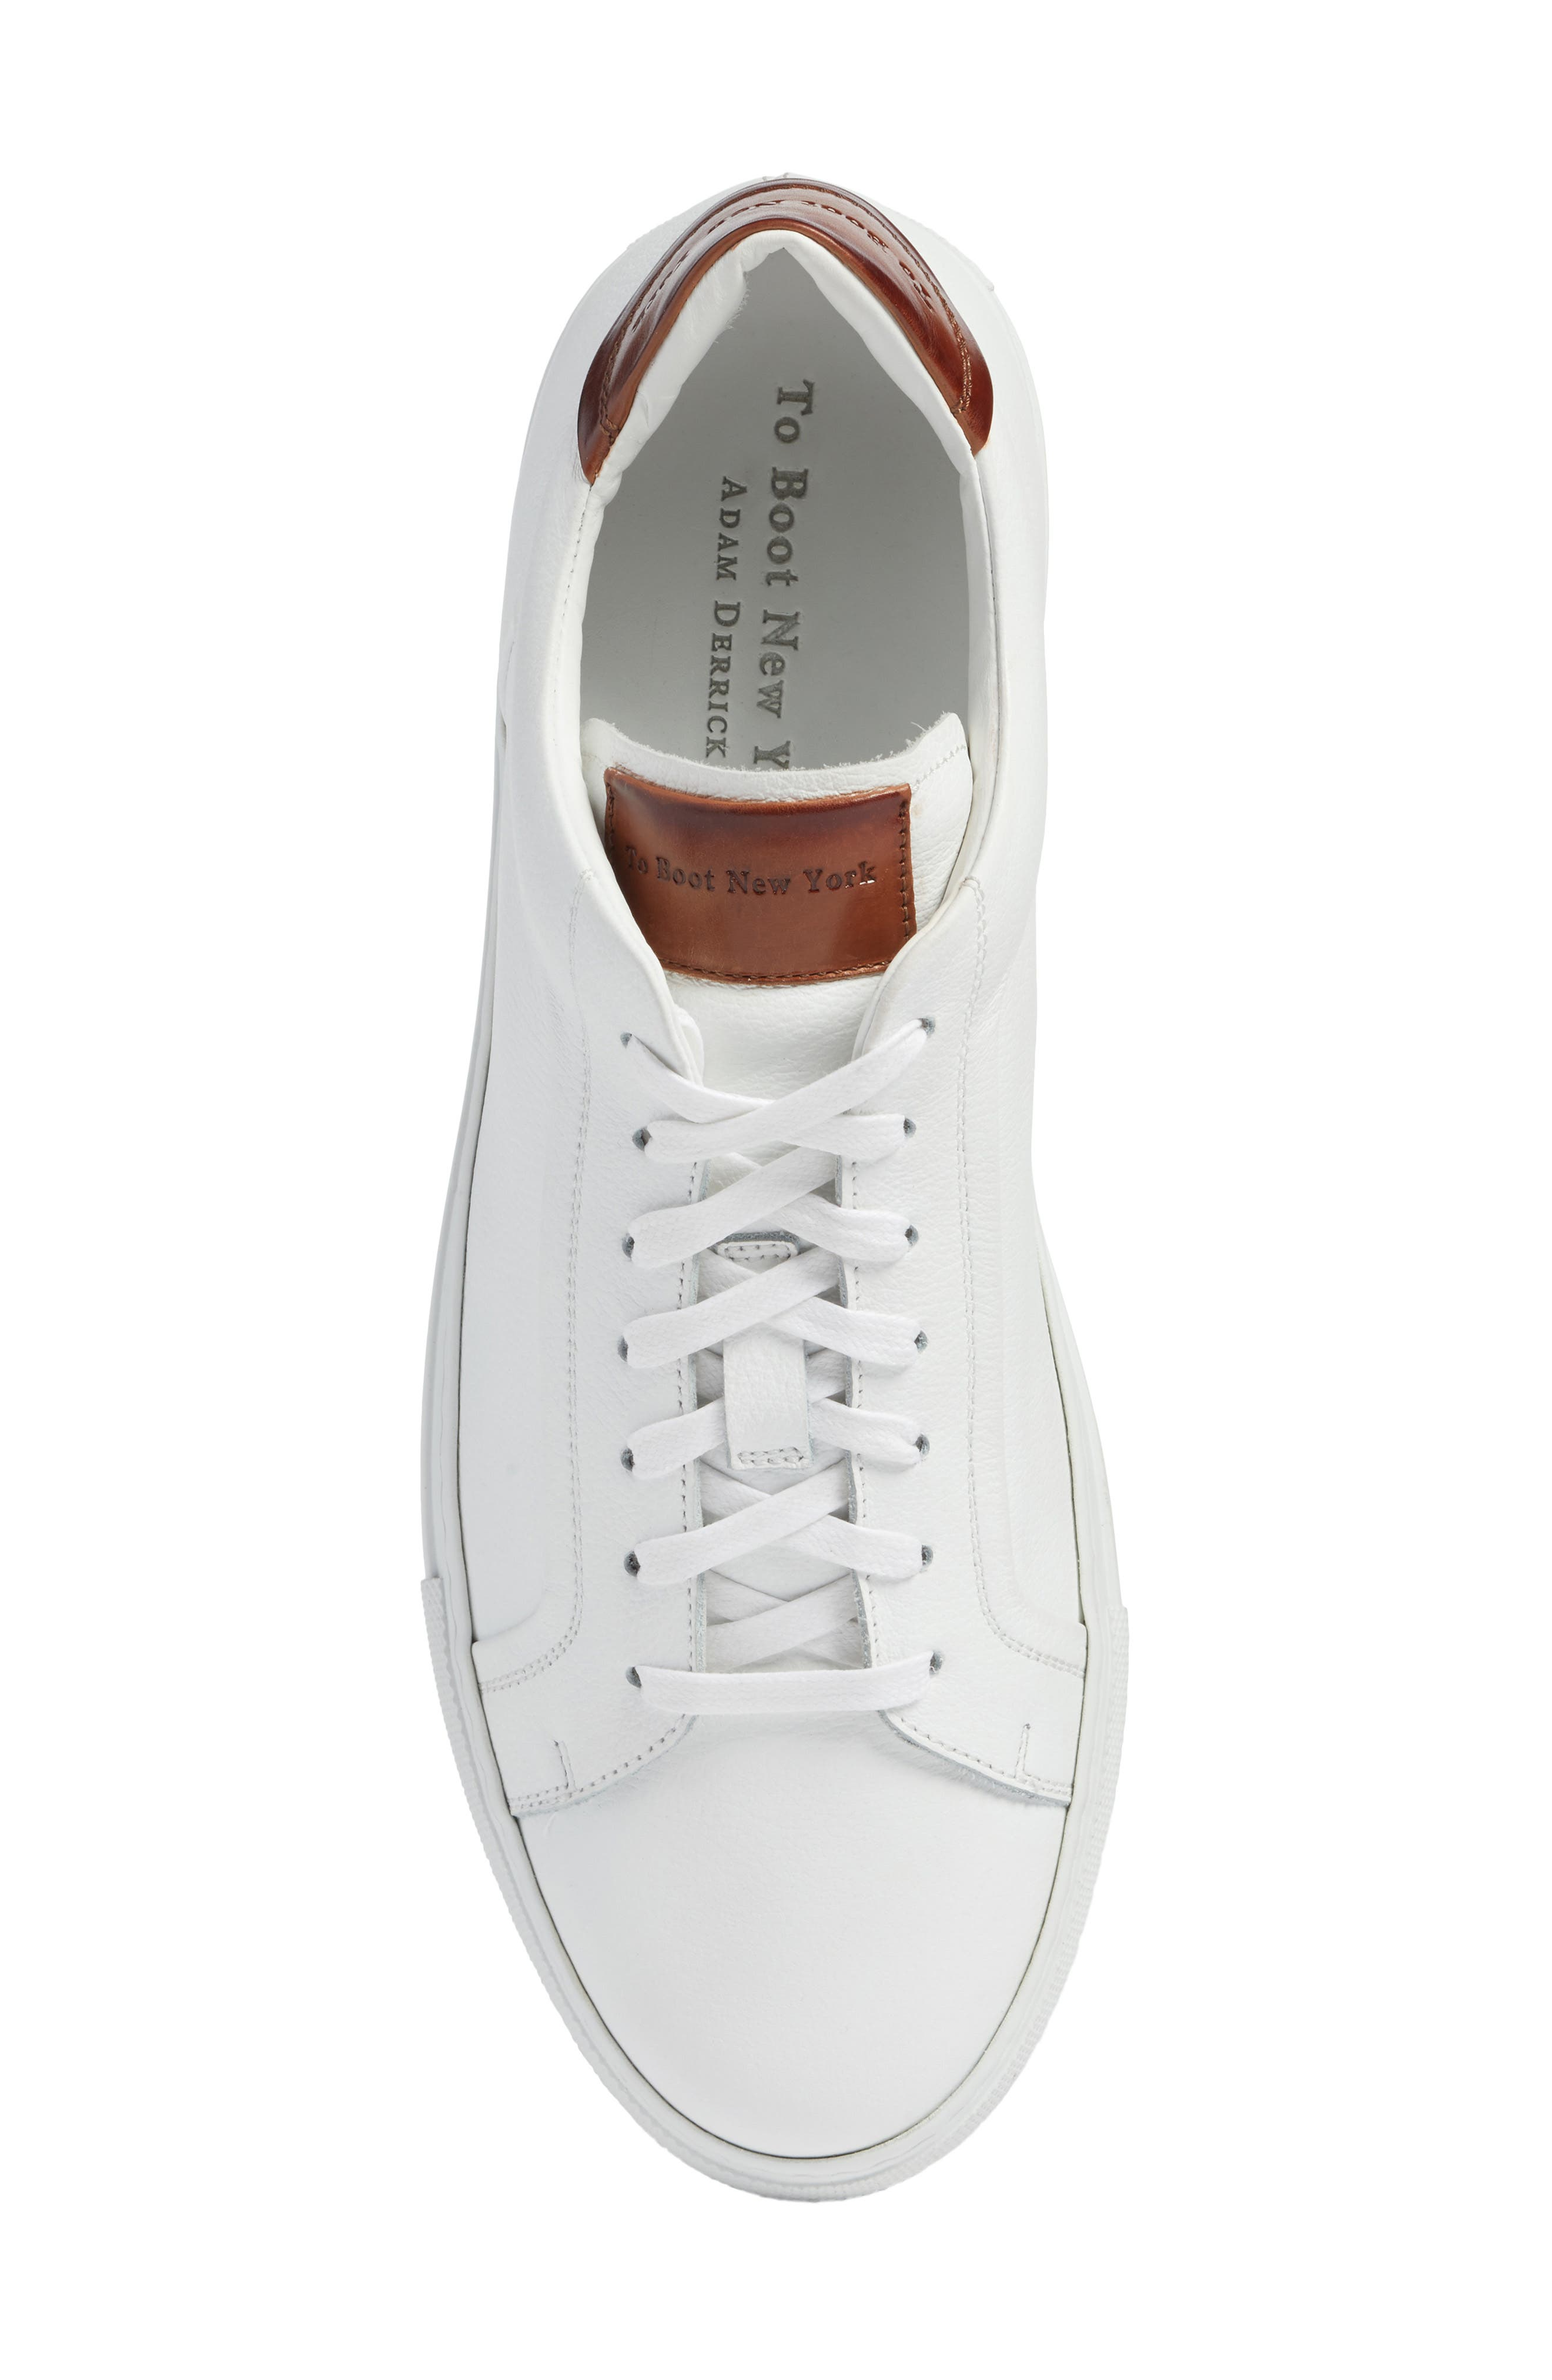 TO BOOT NEW YORK, Carlin Sneaker, Alternate thumbnail 5, color, WHITE/ TAN LEATHER